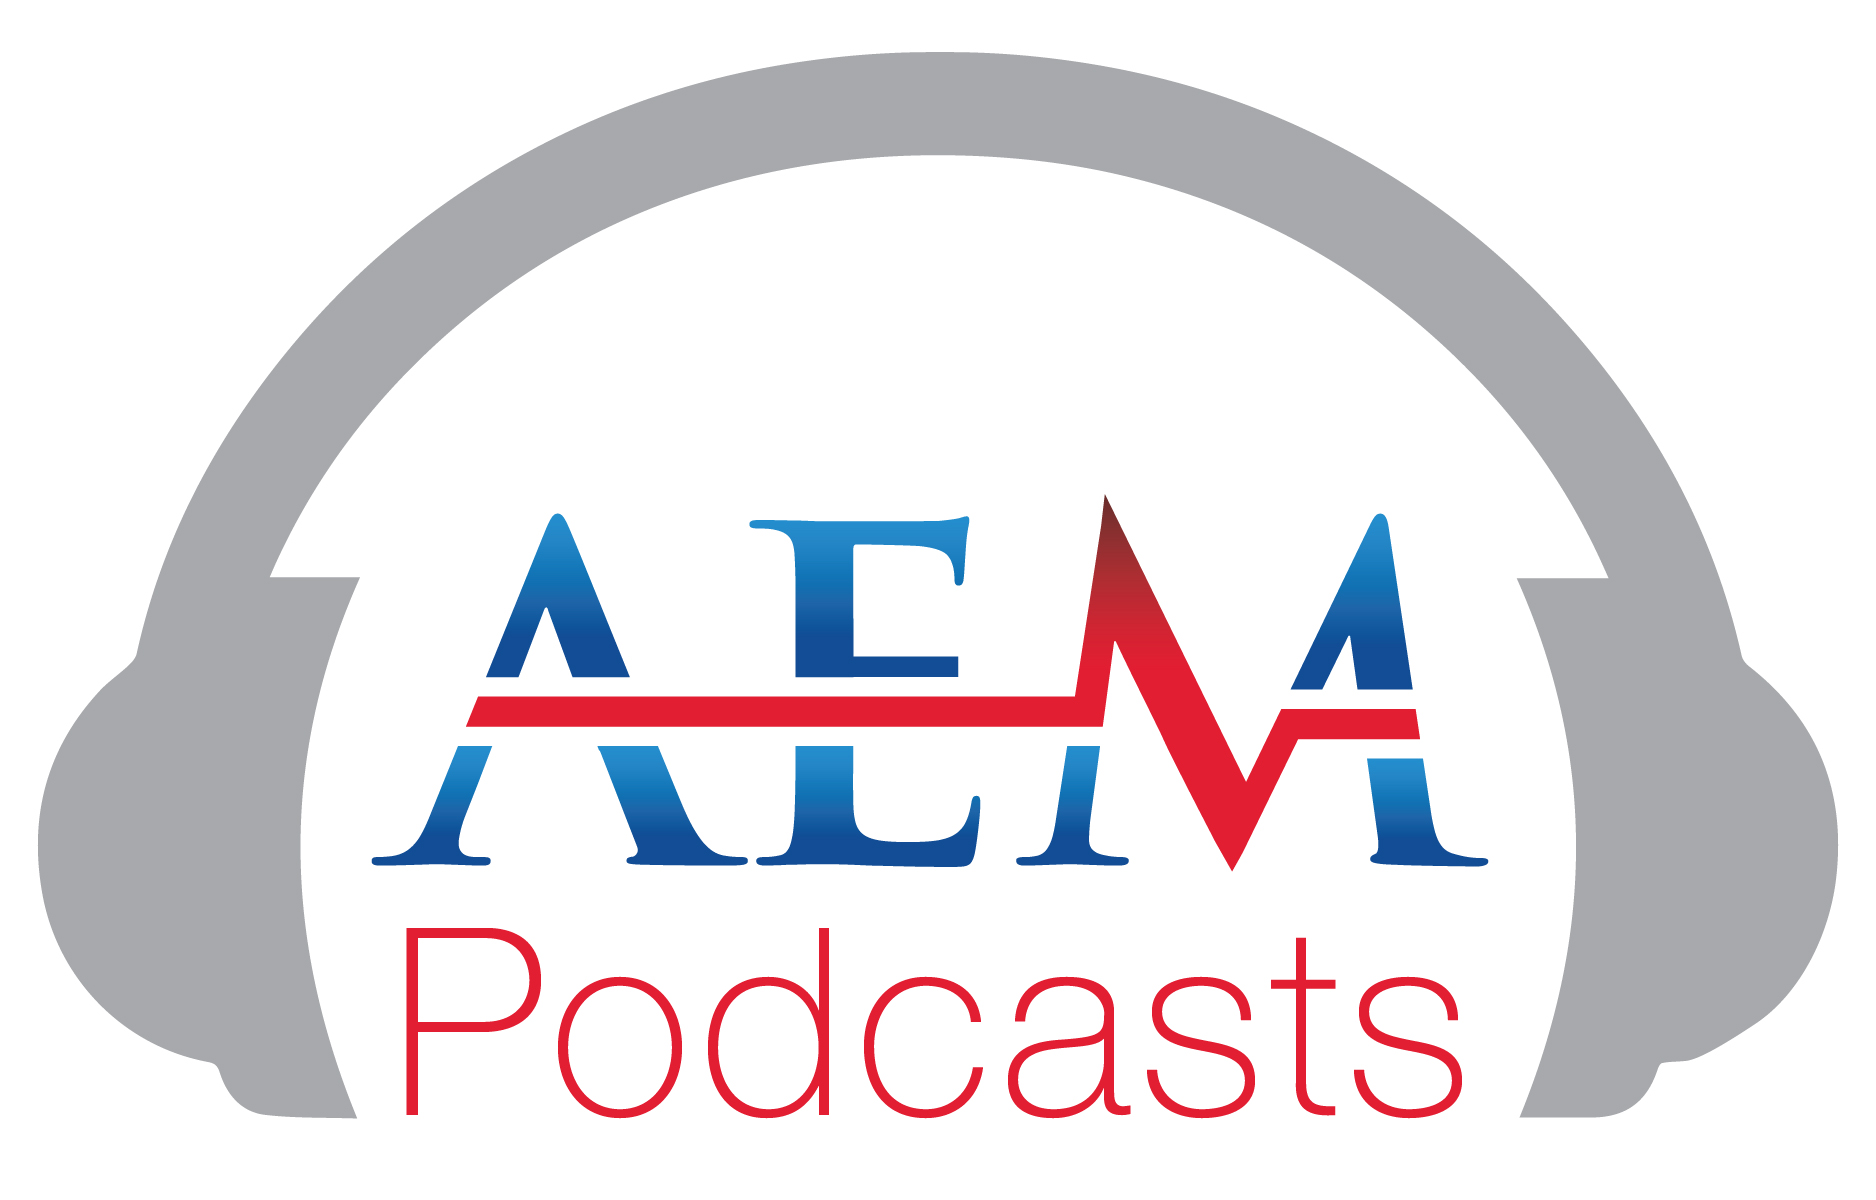 AEM Podcasts logo